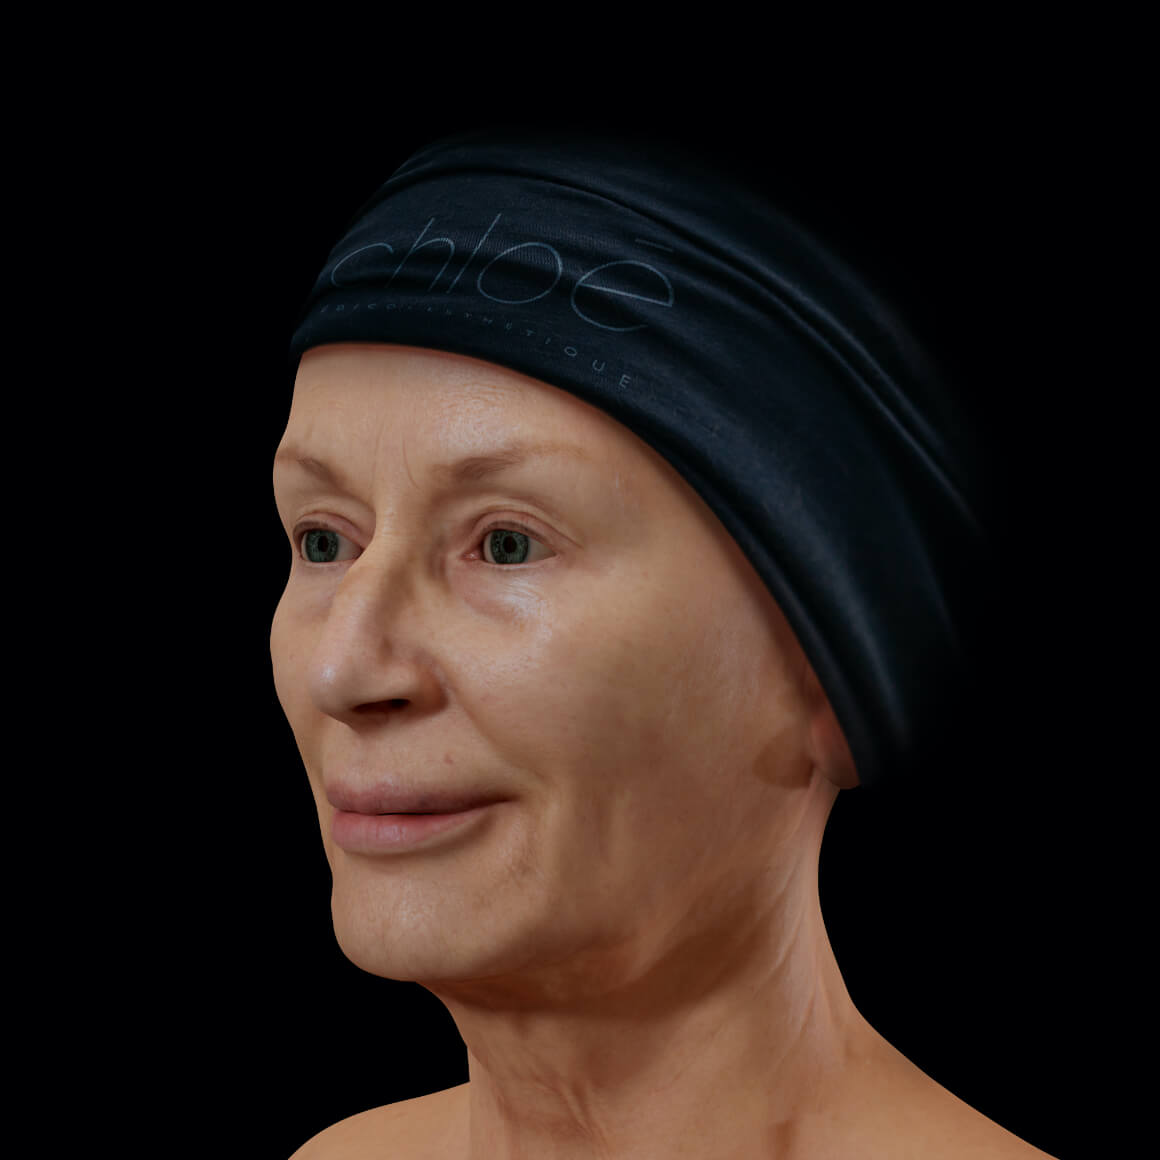 Clinique Chloé female patient positioned at an angle with facial sagging skin